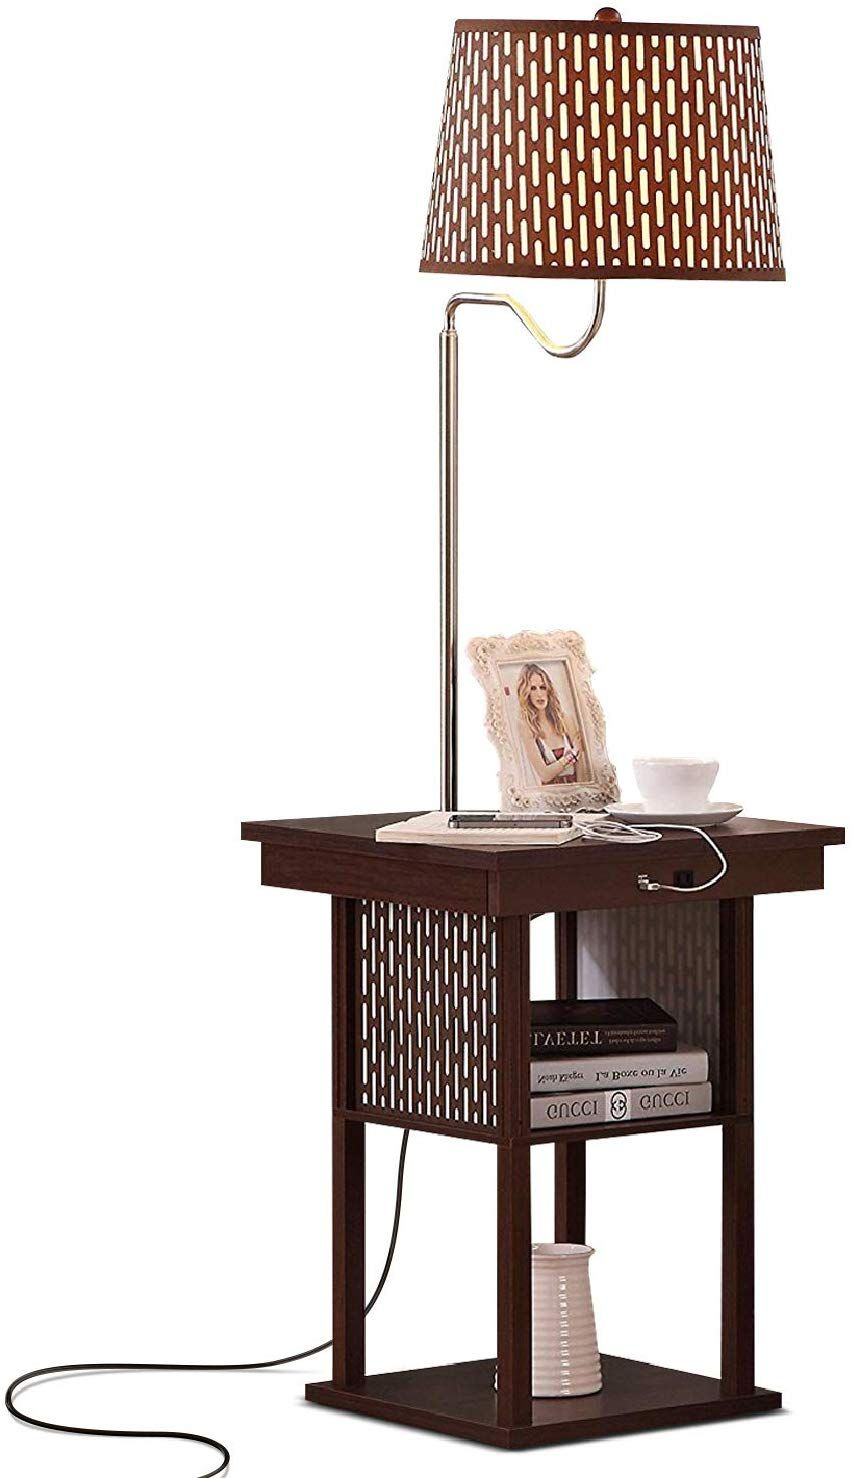 Brightech Madison LED Floor Lamp with USB Charging Ports